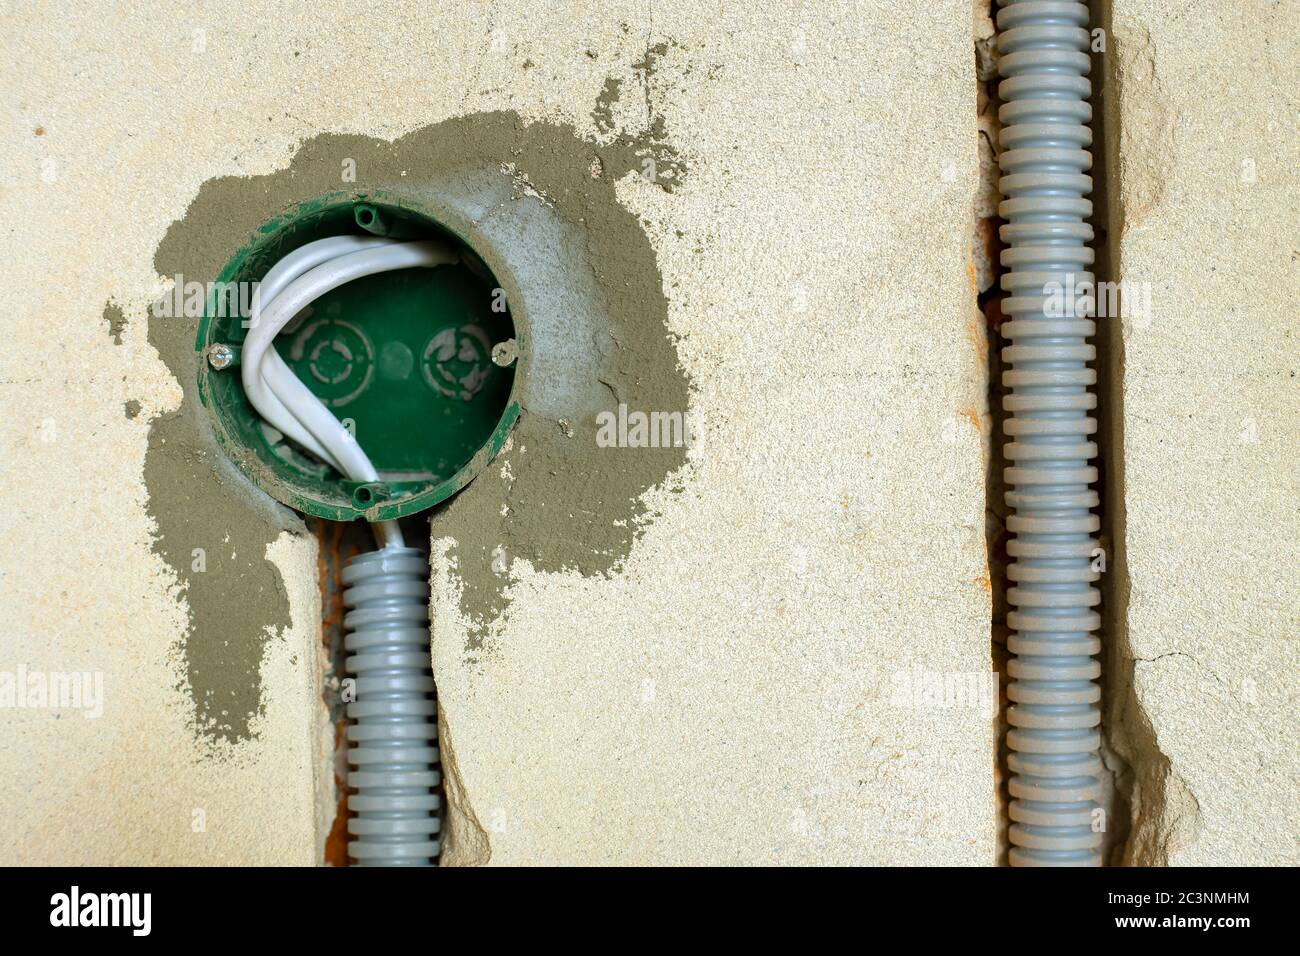 New Electrical Wiring Installation Plastic Boxe And Electrical Cable For Future Outlet Sockets On The Wall Renovation Concept Stock Photo Alamy